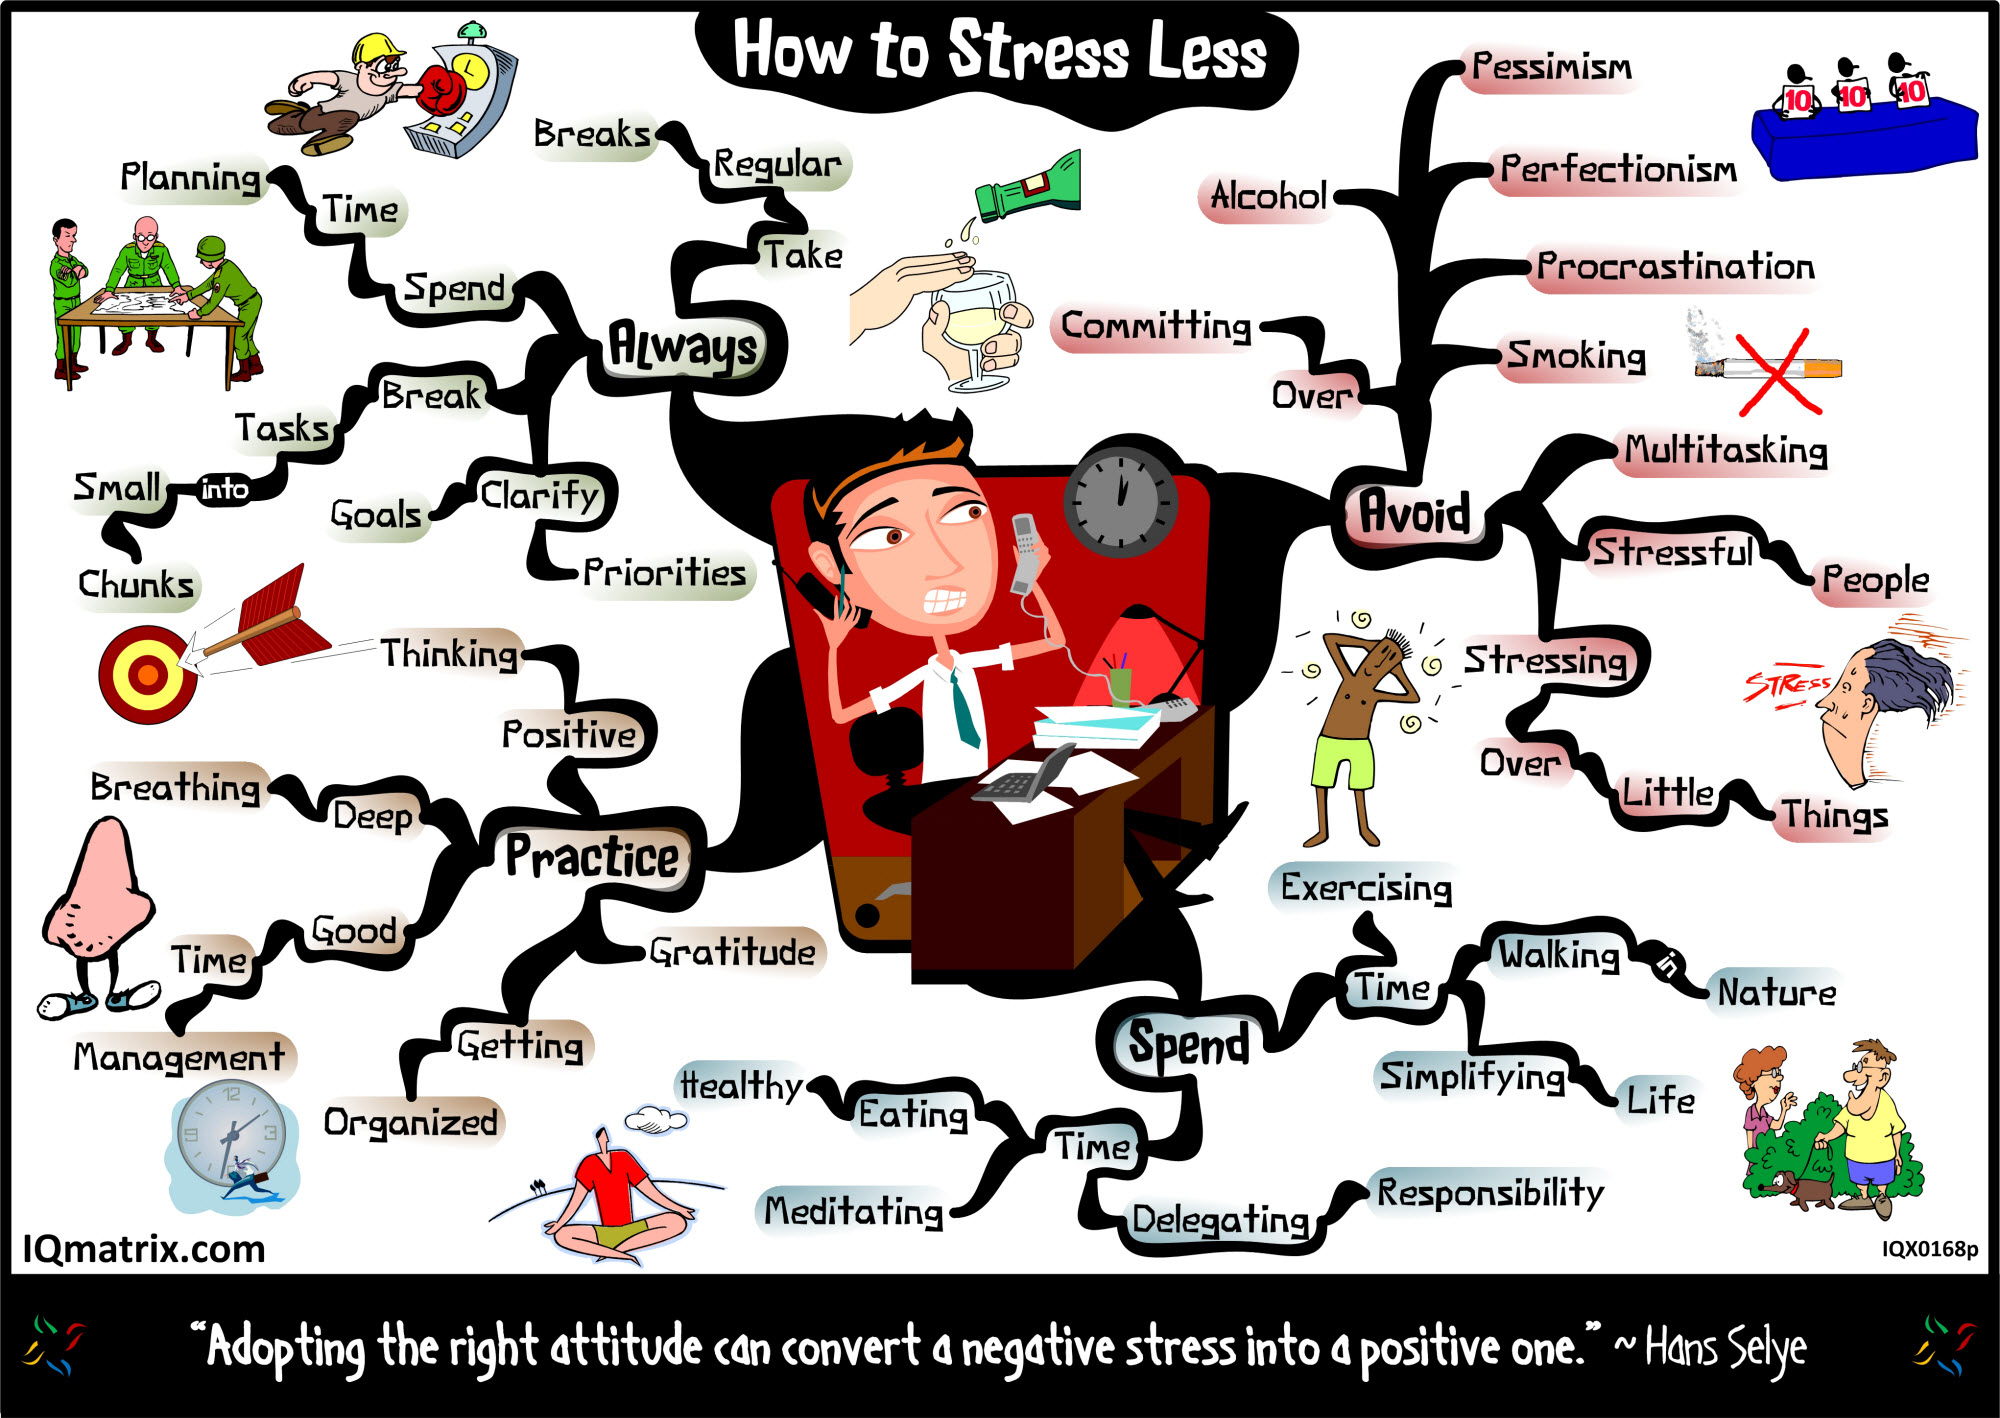 stress-less-mind-map-2000px.jpg